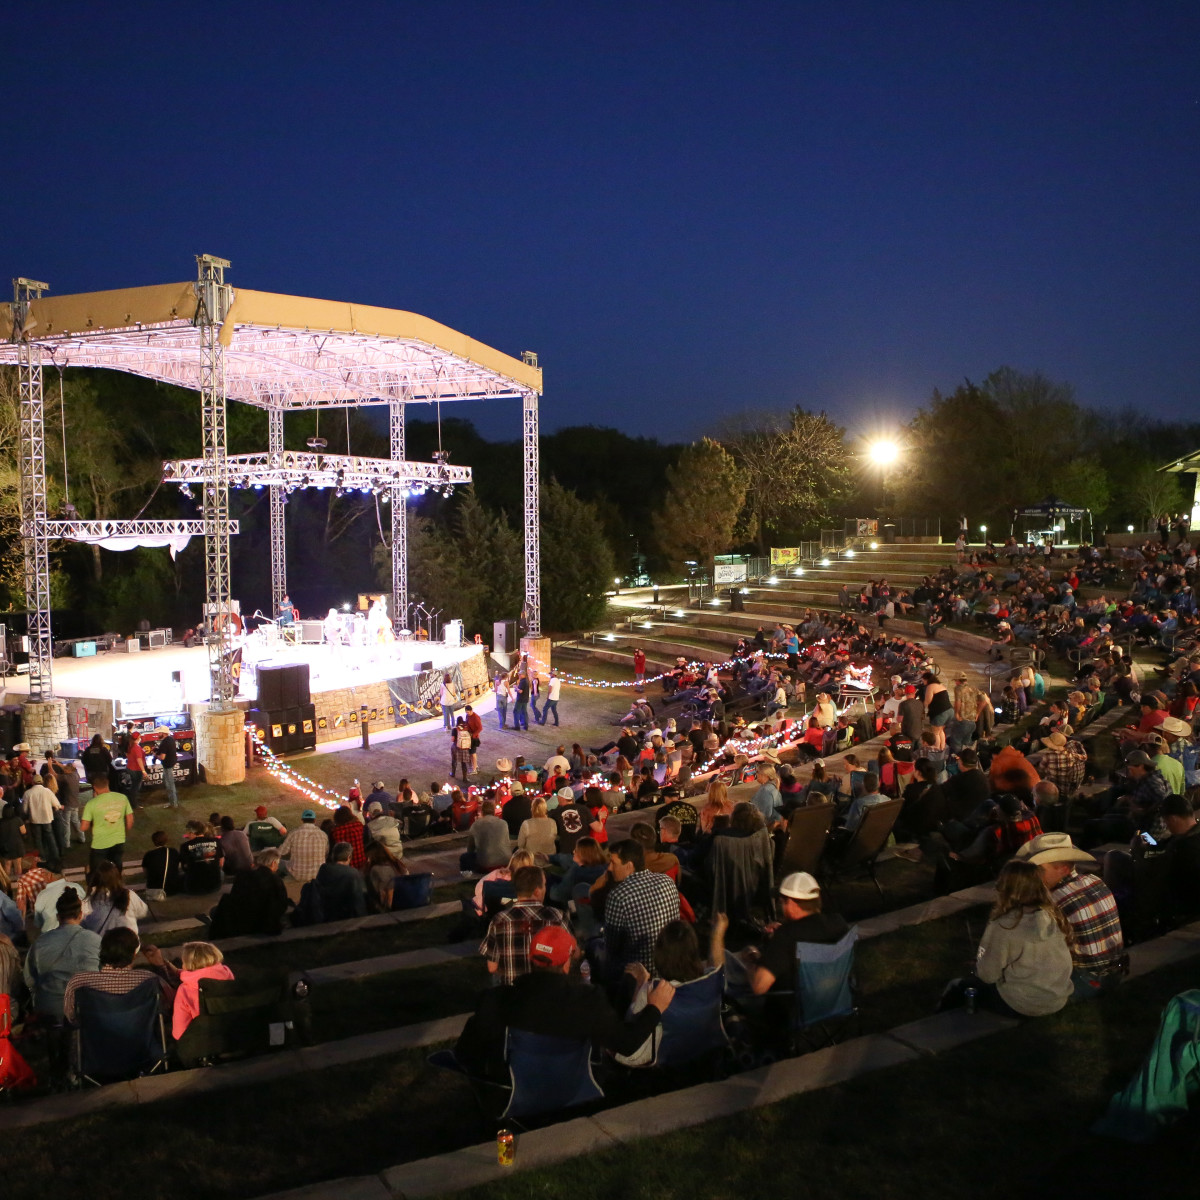 Toyota Texas Music Revolution at Oak Point Park in Plano